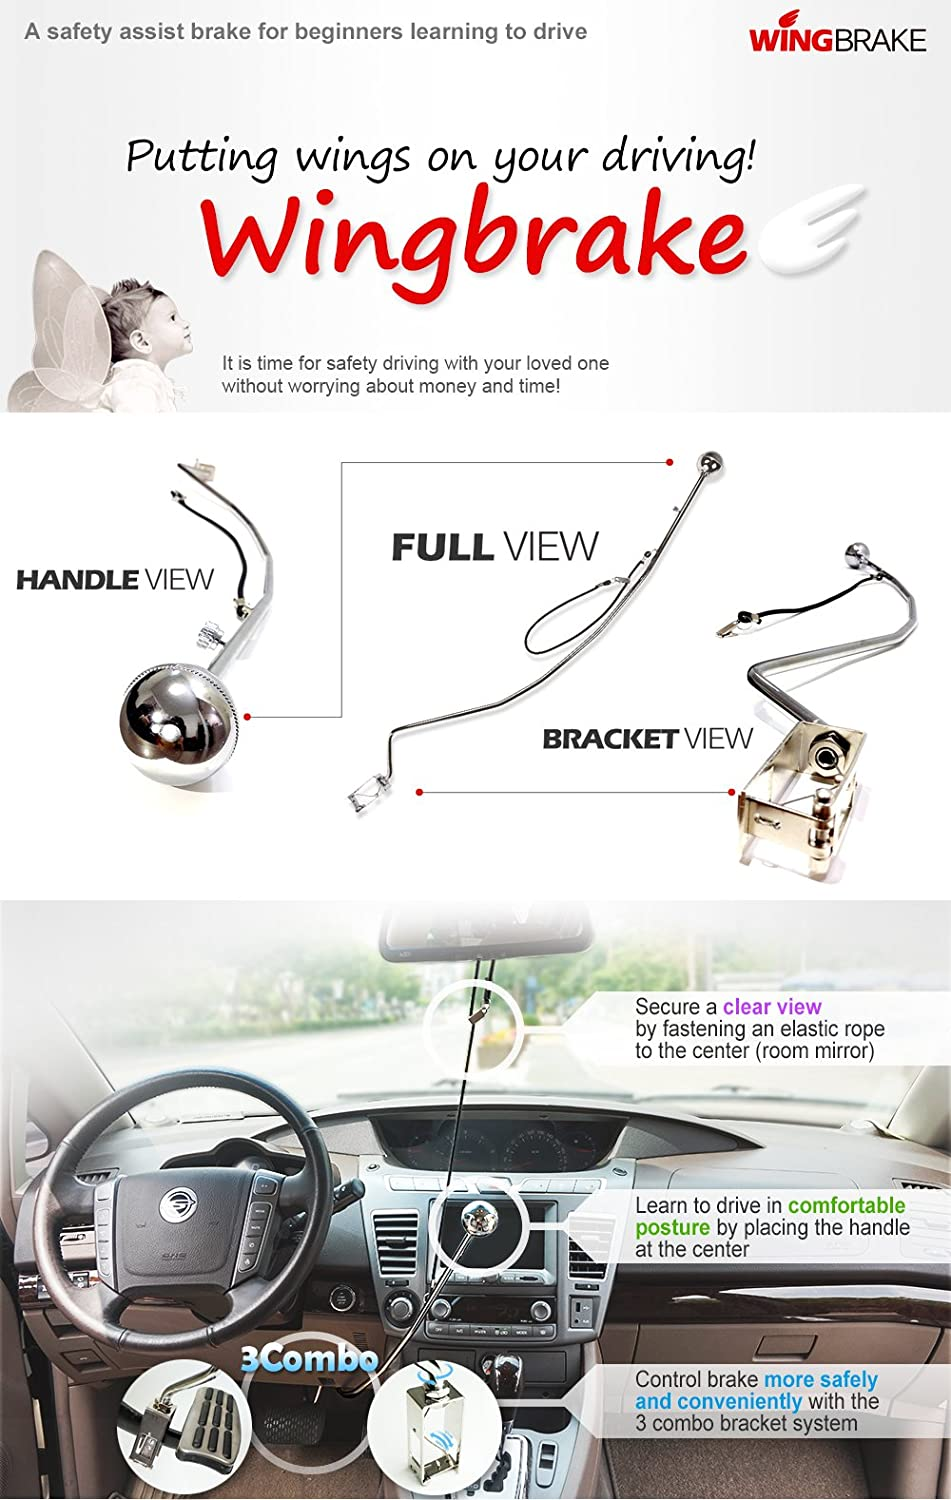 Wingbrake Driver Training Brake Student How To Install Your Control Instructor Passenger Teen Driving Lesson Automotive